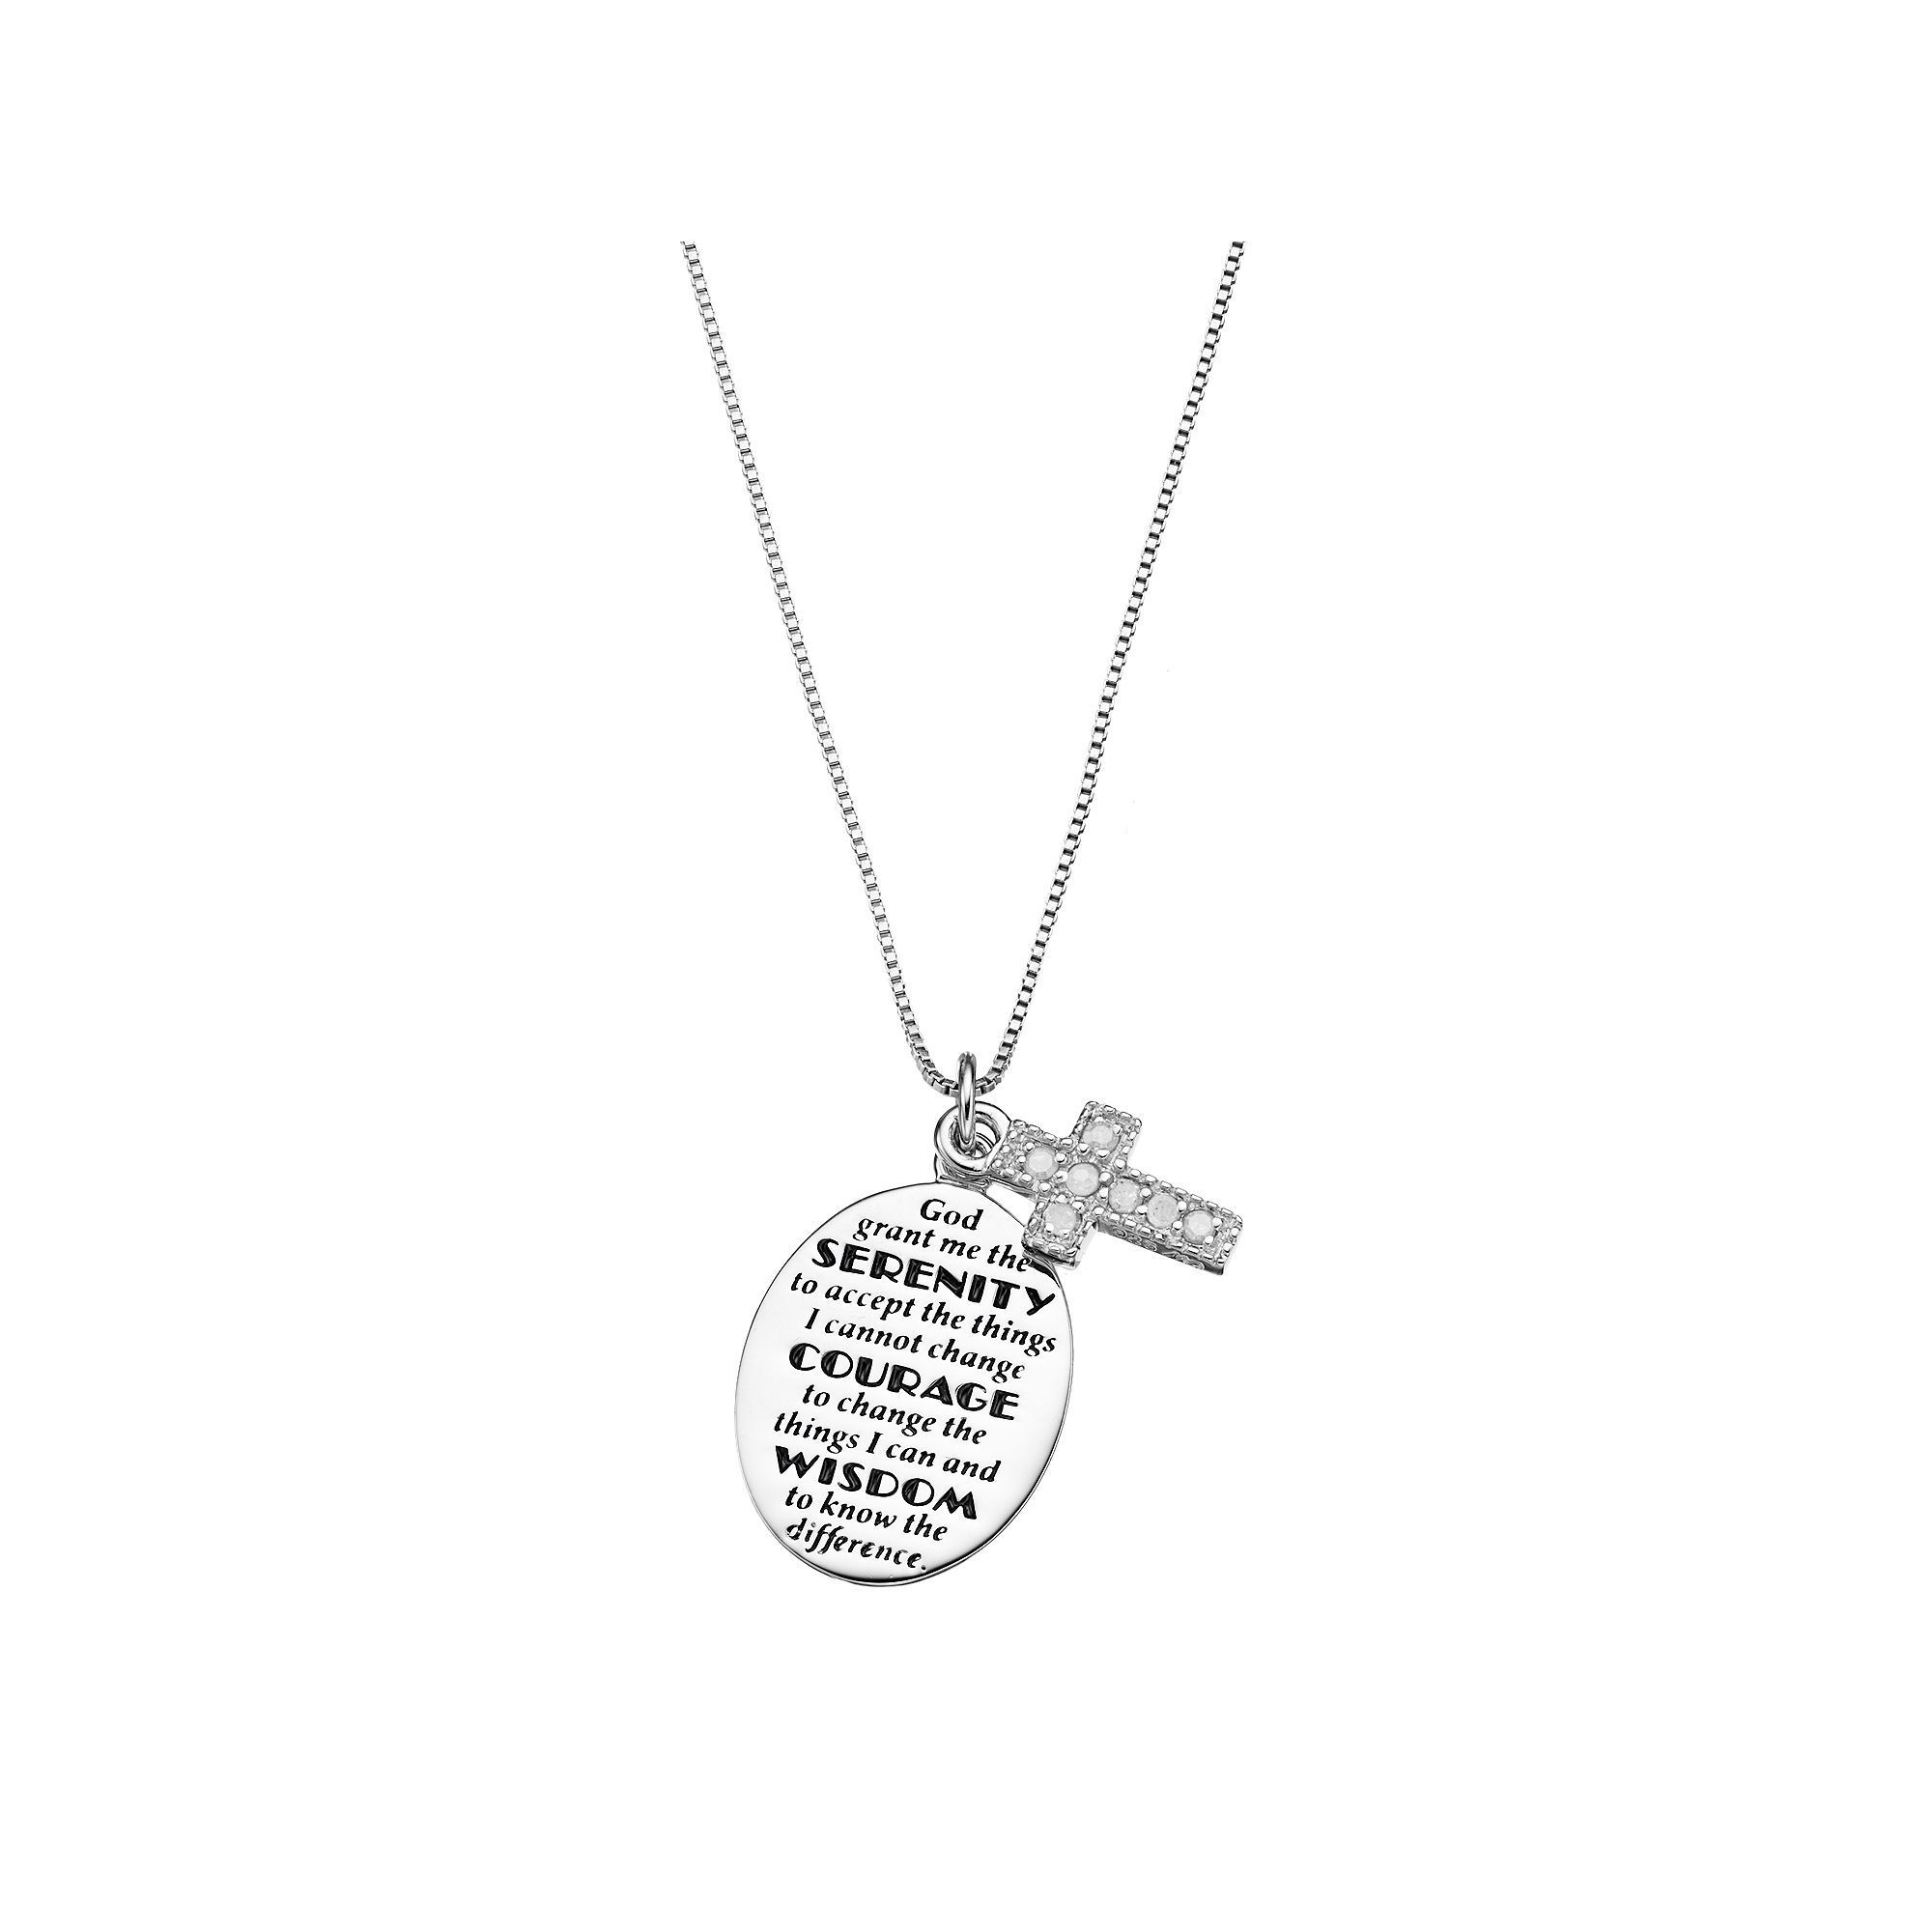 churchill dog serenity steel pin forever selected tag prayer necklace awesome stainless is products anna by